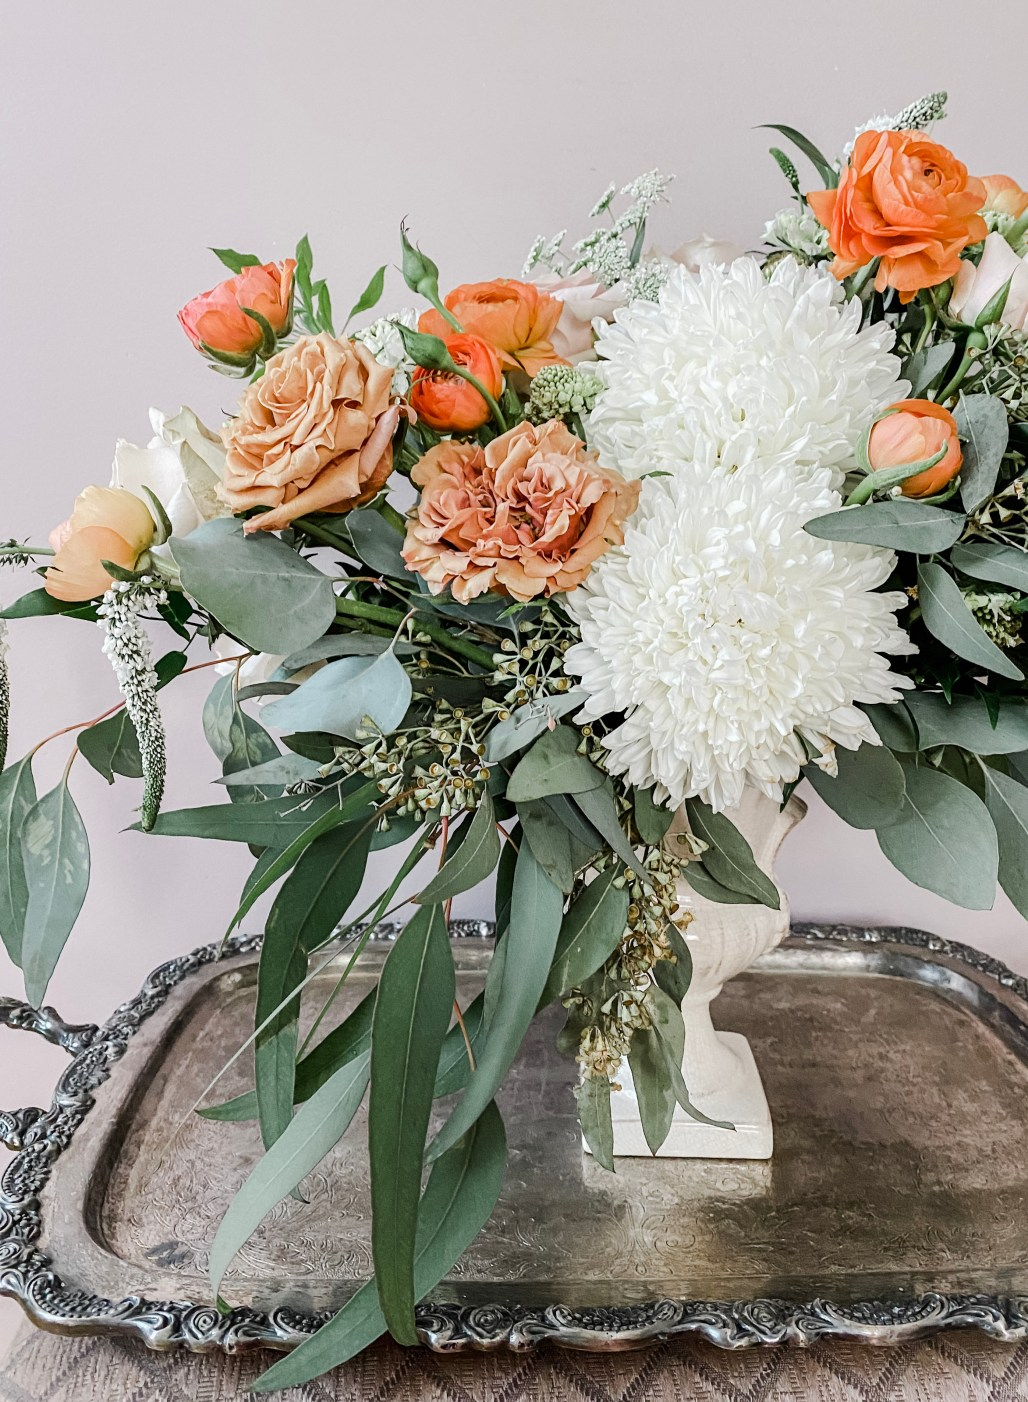 Floral Inspiration :: Boho Terrcotta Hues meets French Country Garden